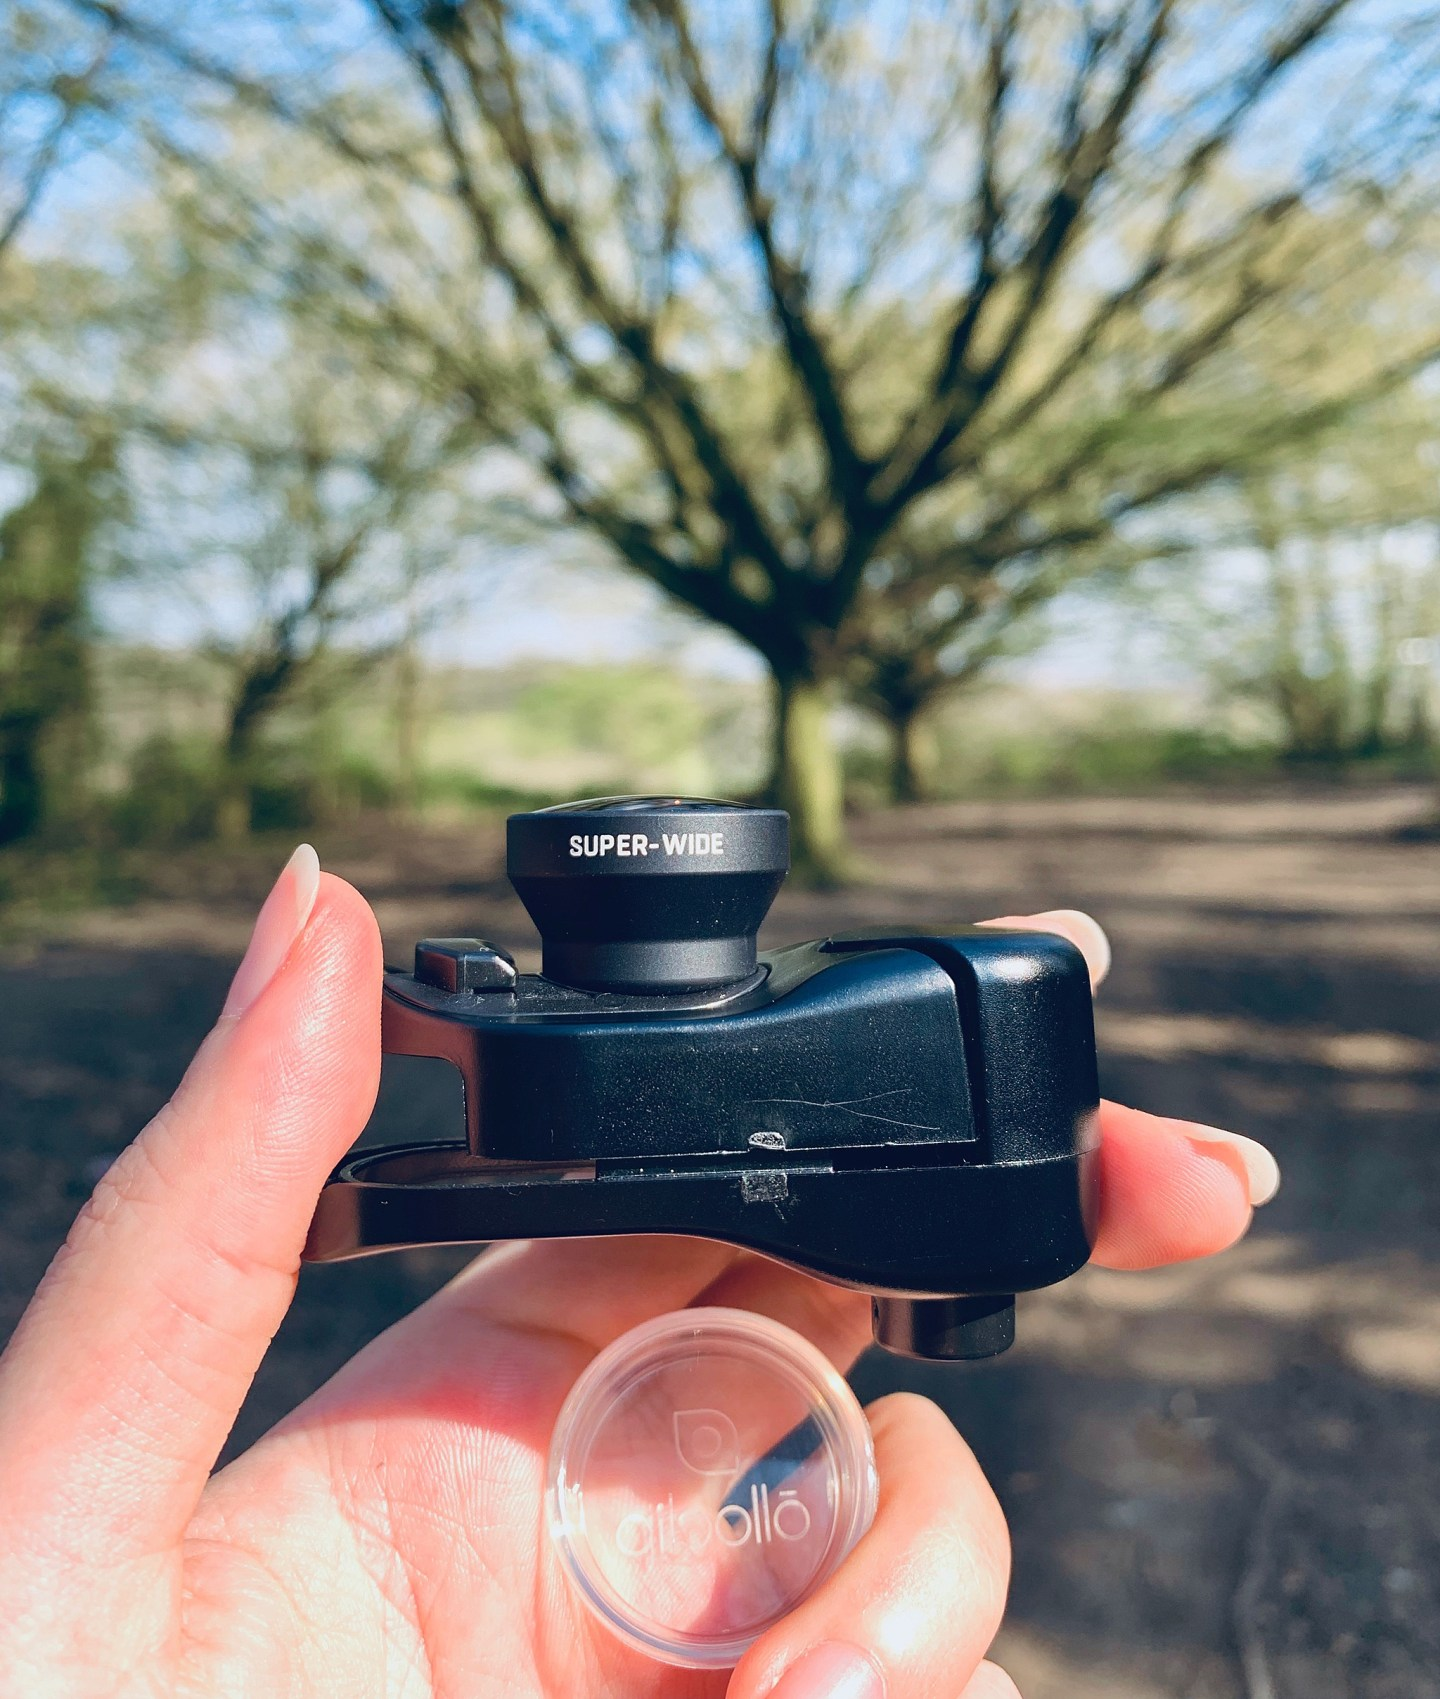 Olloclip Photography Lens Review for Smartphone